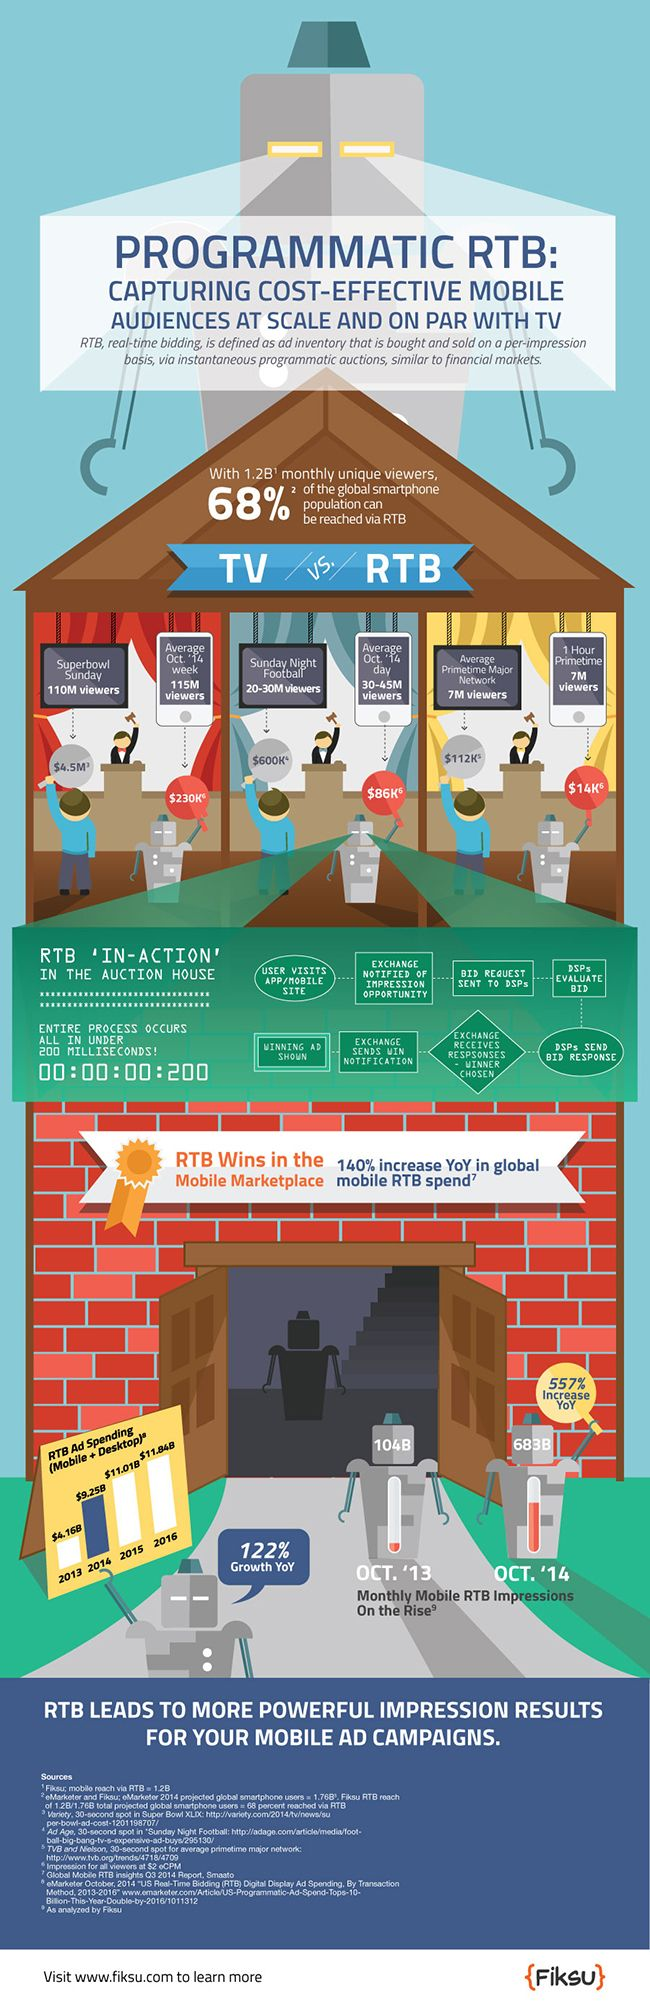 Advertising-Infographics-Programmatic-RTB-Capturing-Cost-Effective-Mobile-Audiences-At-Scale-And-on-Par Advertising Infographics : Programmatic RTB: Capturing Cost-Effective Mobile Audiences At Scale And on Par ...